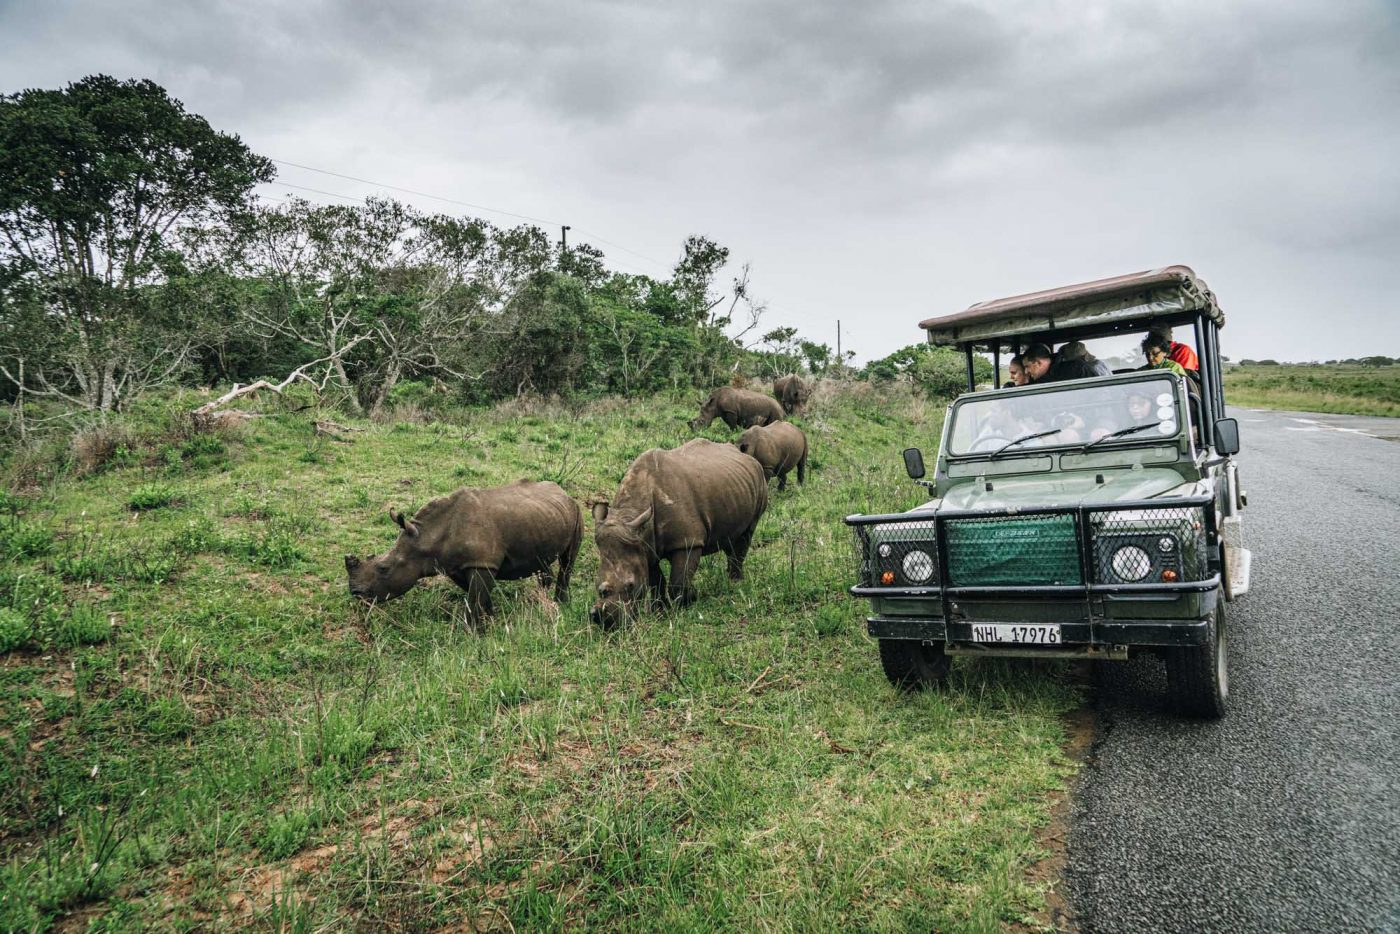 Rhino encounter in iSimangaliso National Park